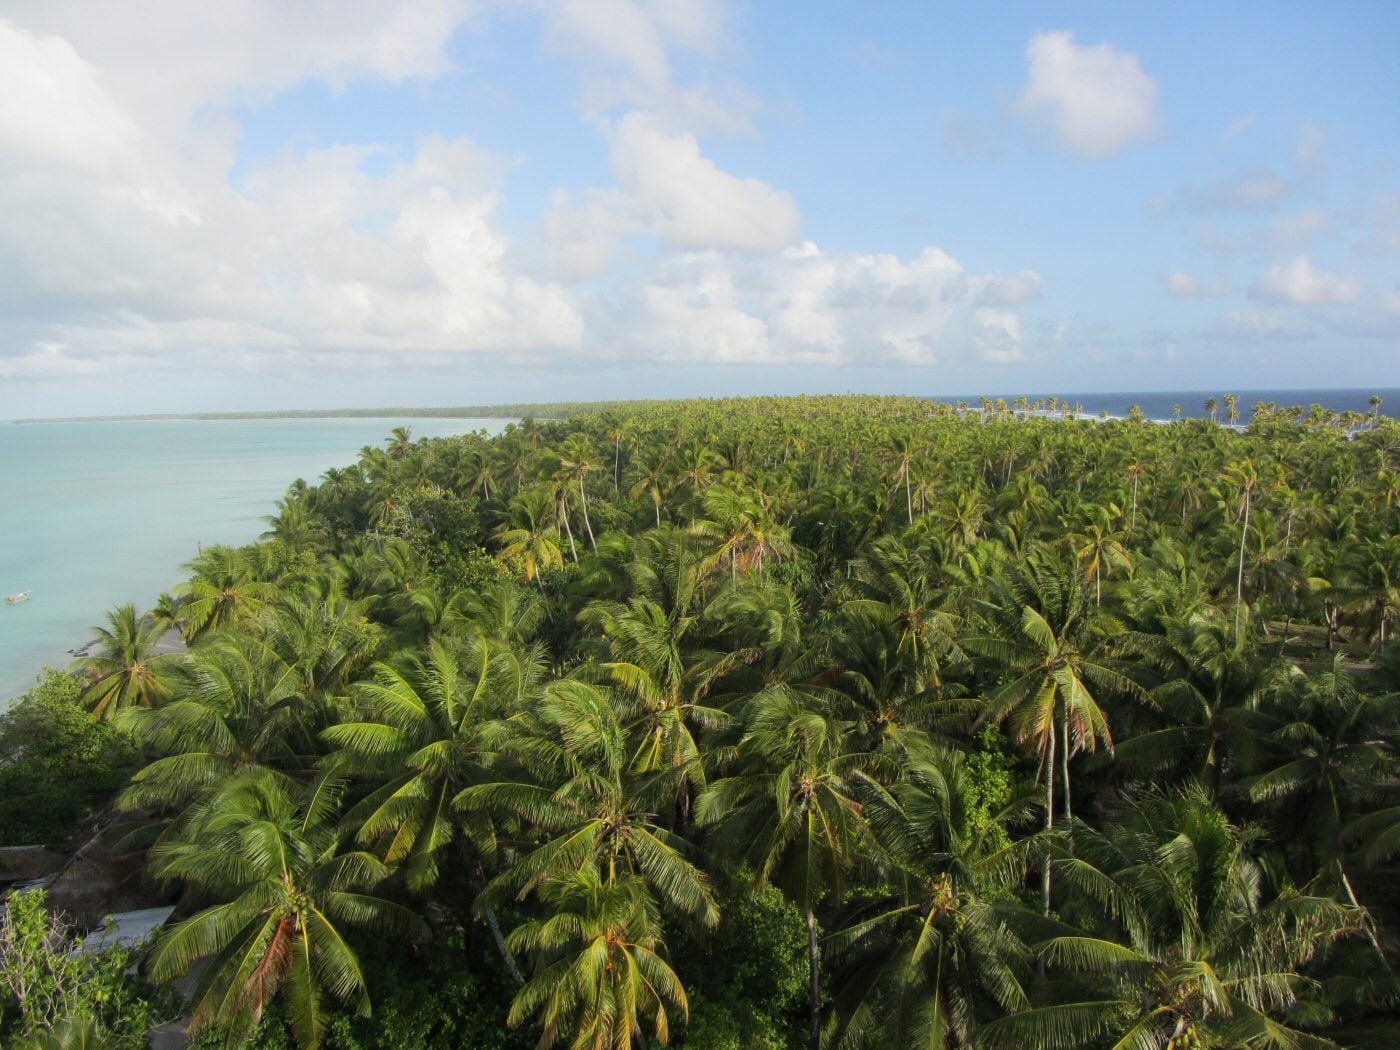 """A beautiful palm forest with no trees in sight.  """"Abaiang top view"""" by Flexman - Own work. Licensed under CC BY-SA 3.0 via Wikimedia Commons"""